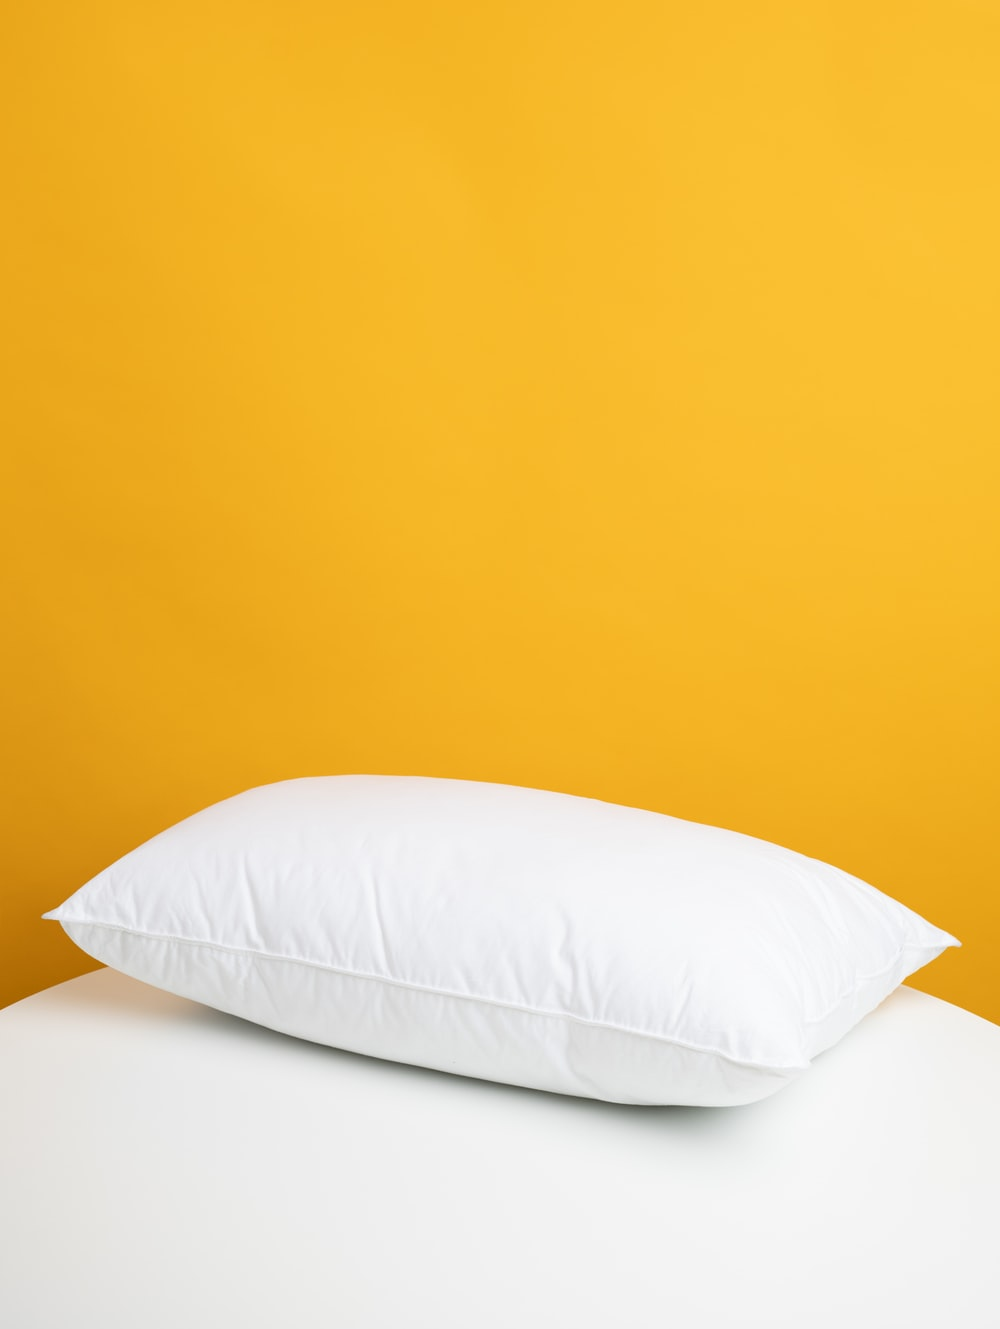 white pillow on white bed